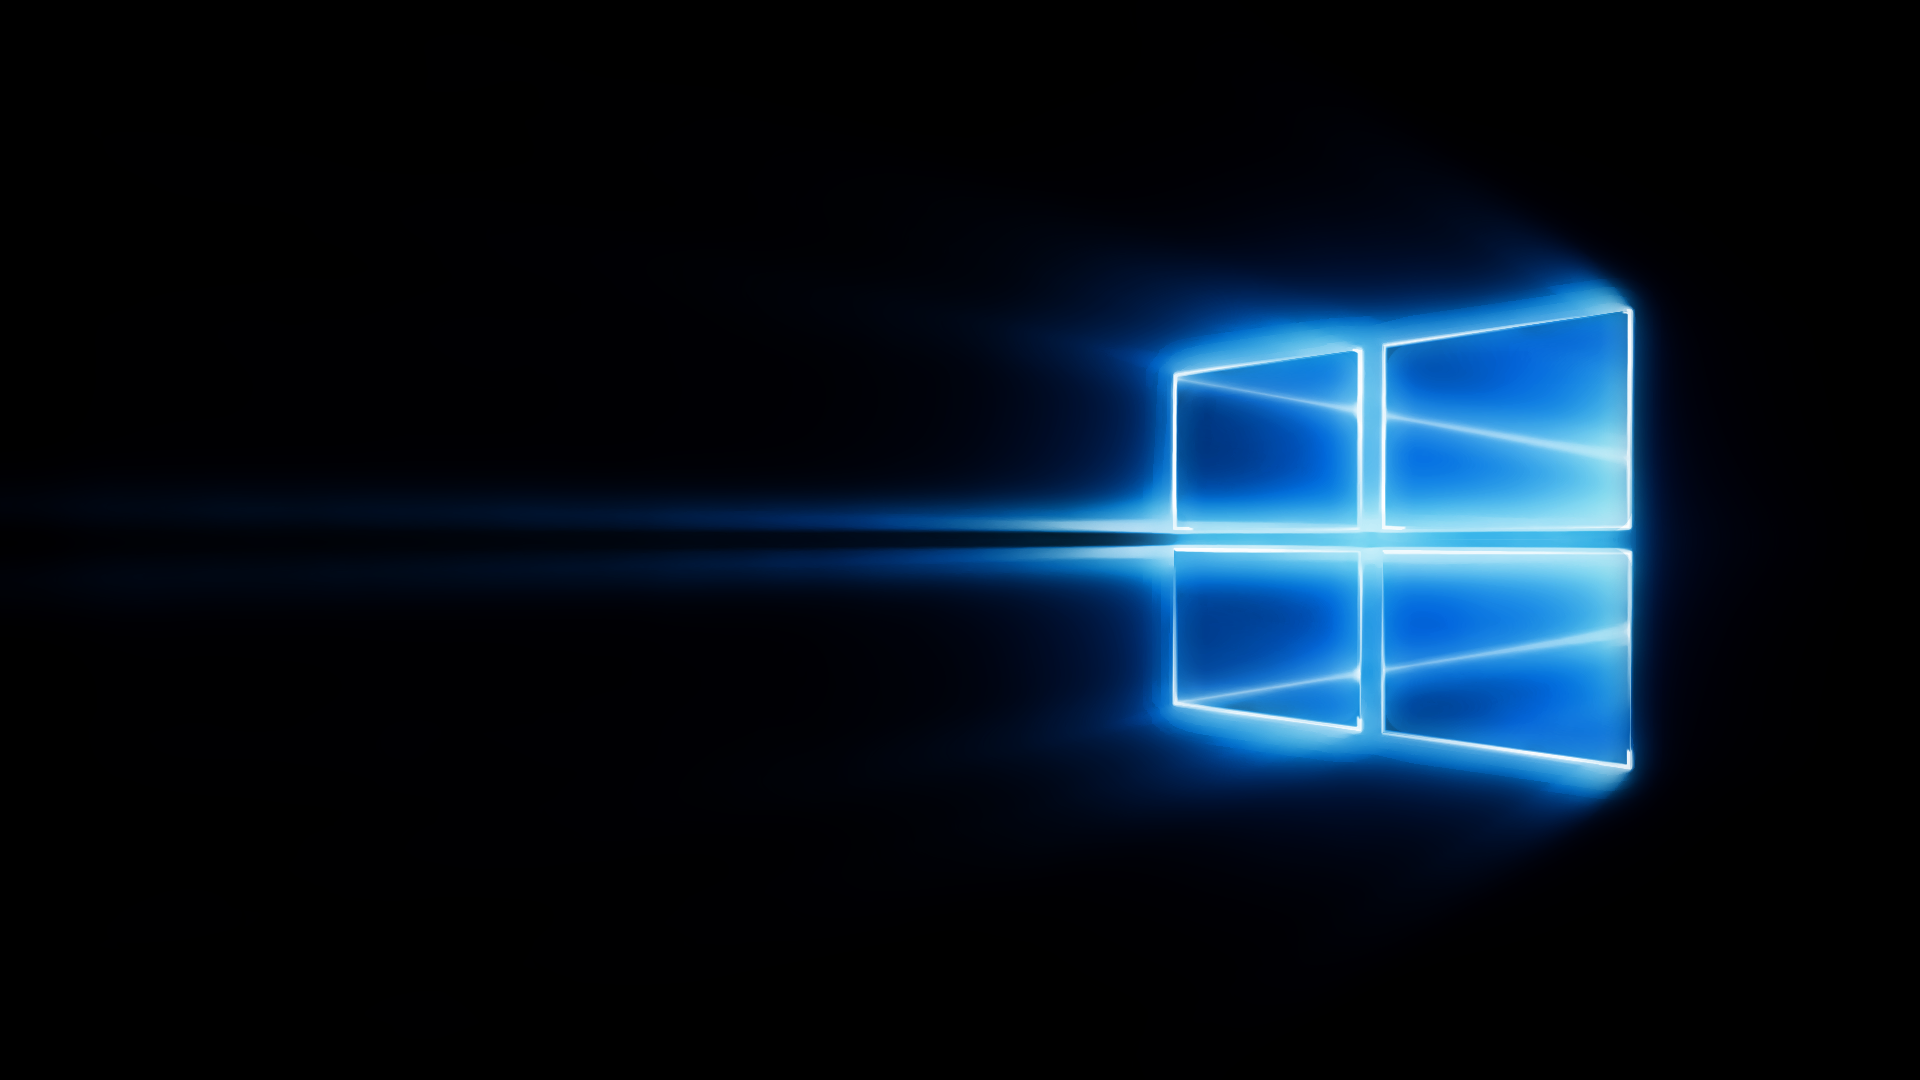 how to change the background wallpaper on windows 8